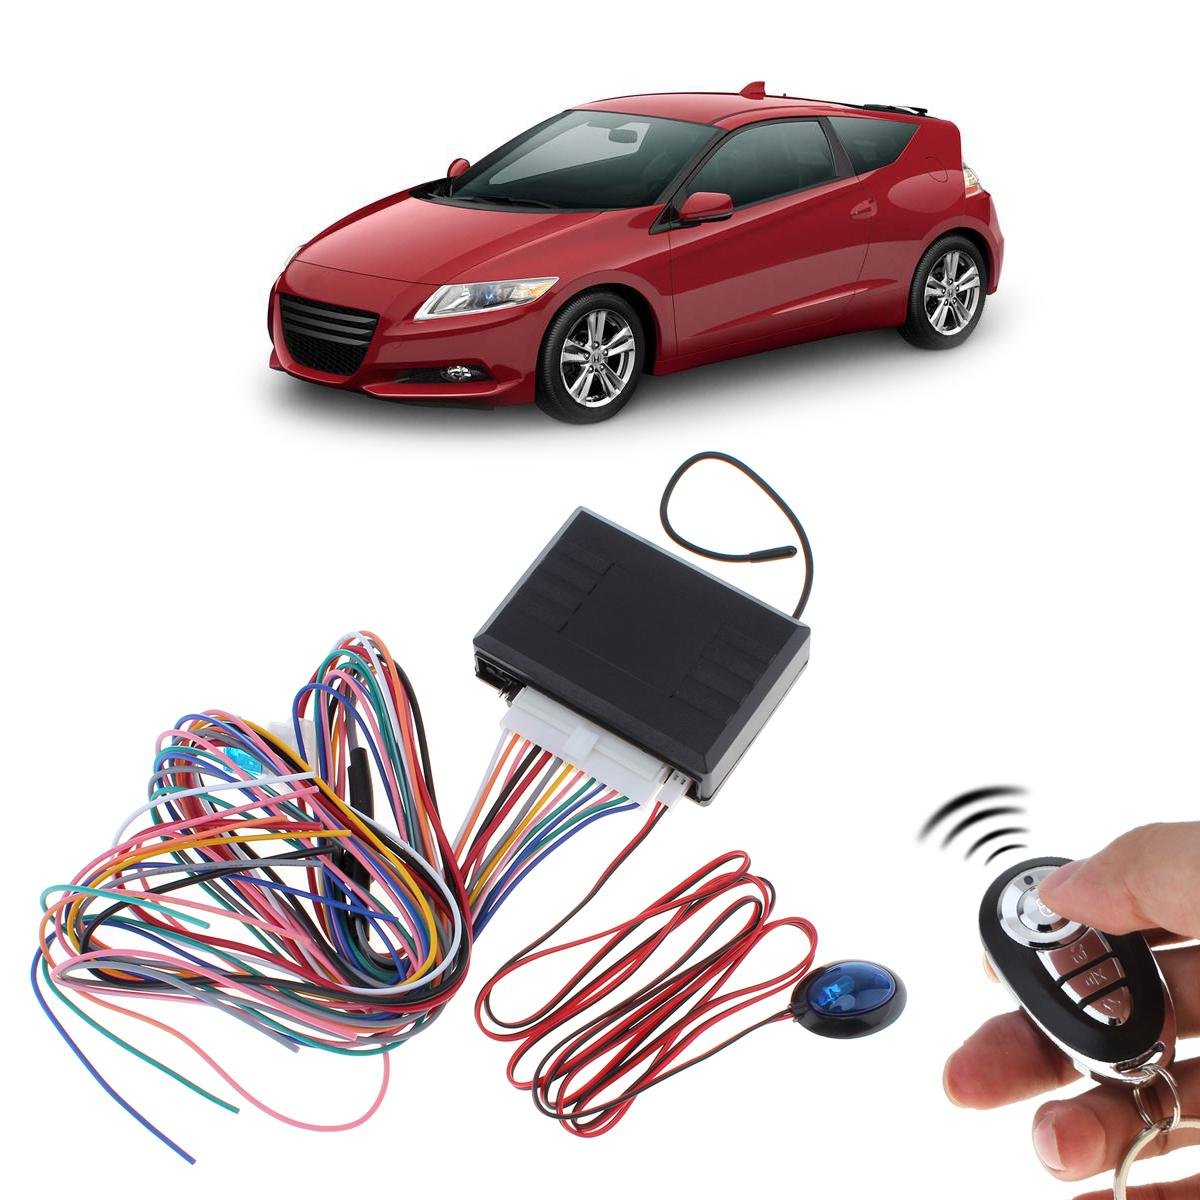 Car Alarm Systems Auto Remote Central Kit Door Lock Vehicle 12V Keyless Entry System with Remote Control CAL_107